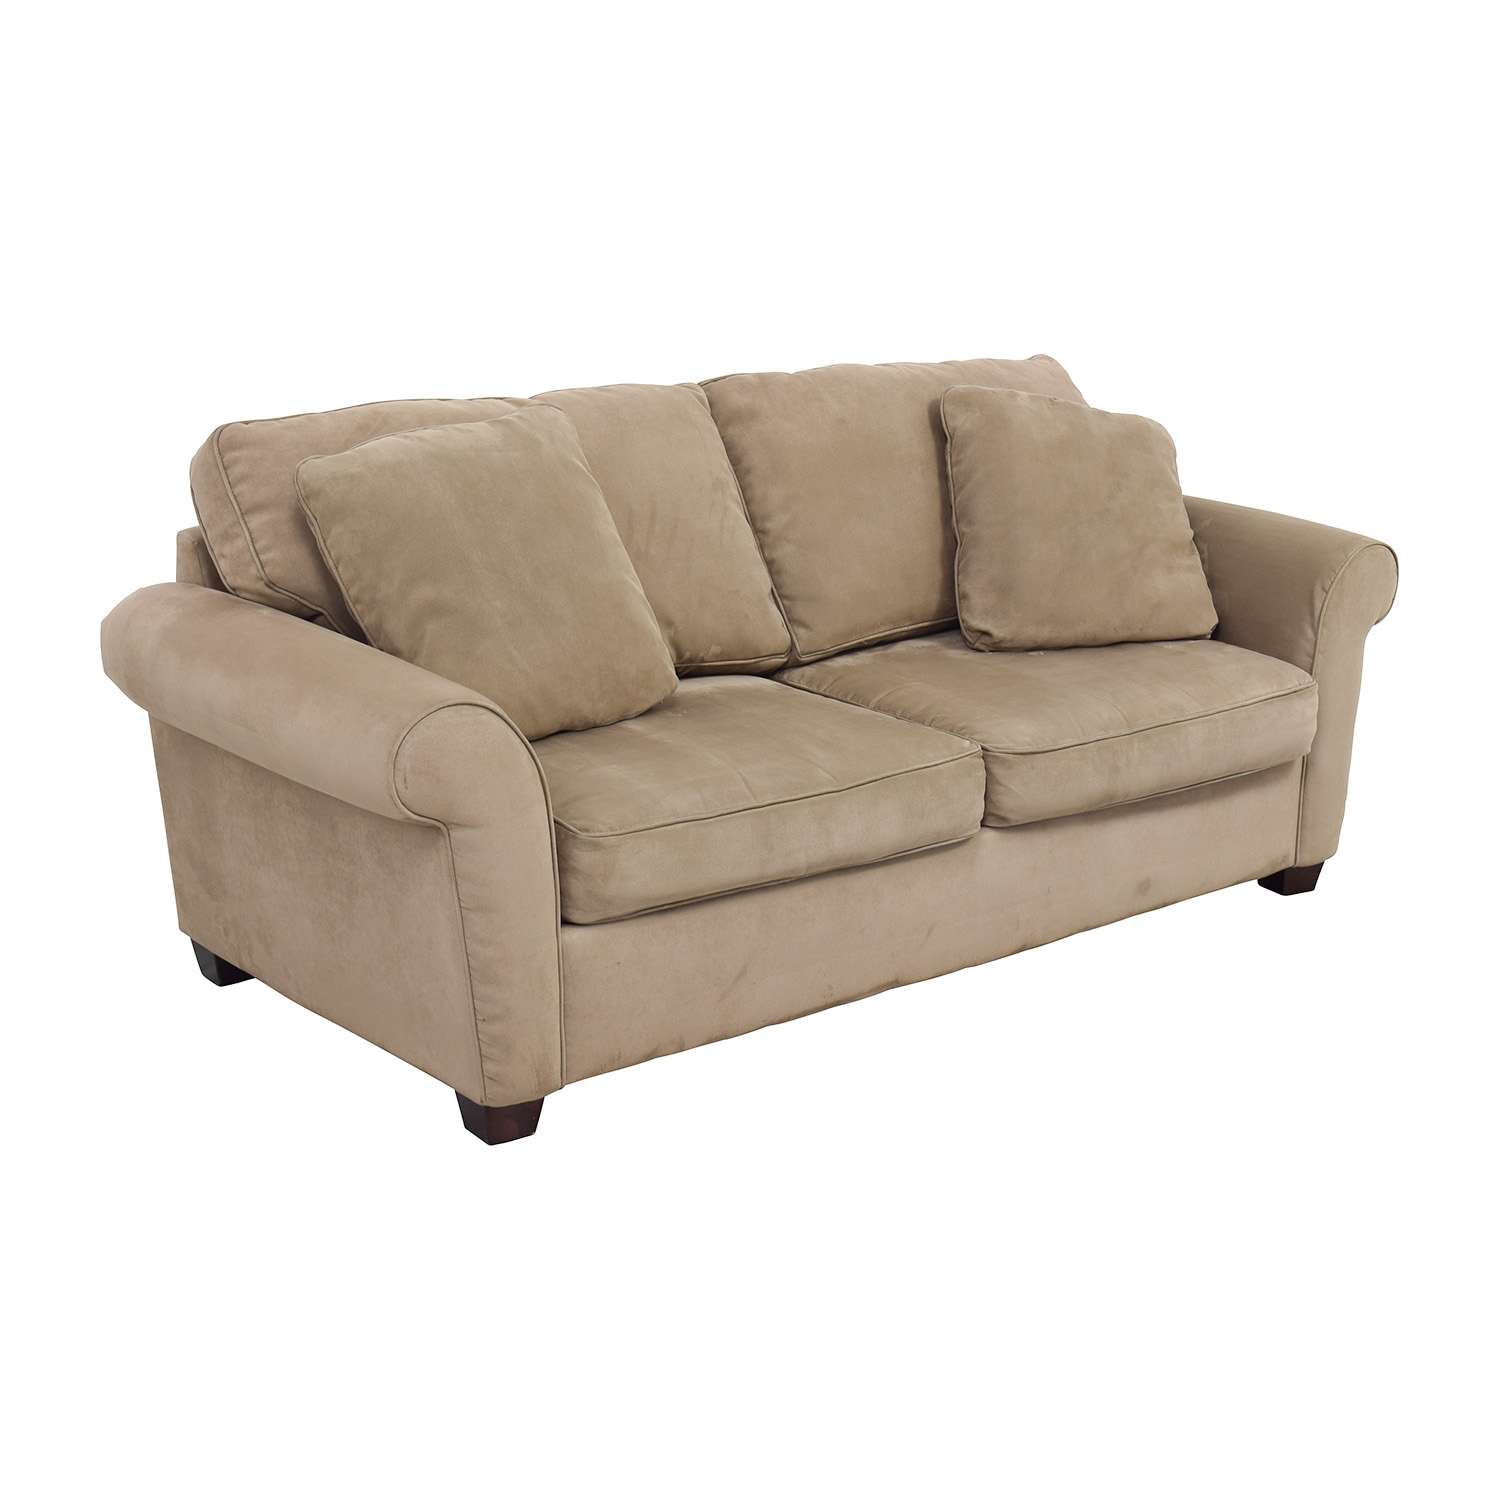 Sofa 180 cm breit stunning sofa 180 cm breit with sofa for Schlafsofa second hand